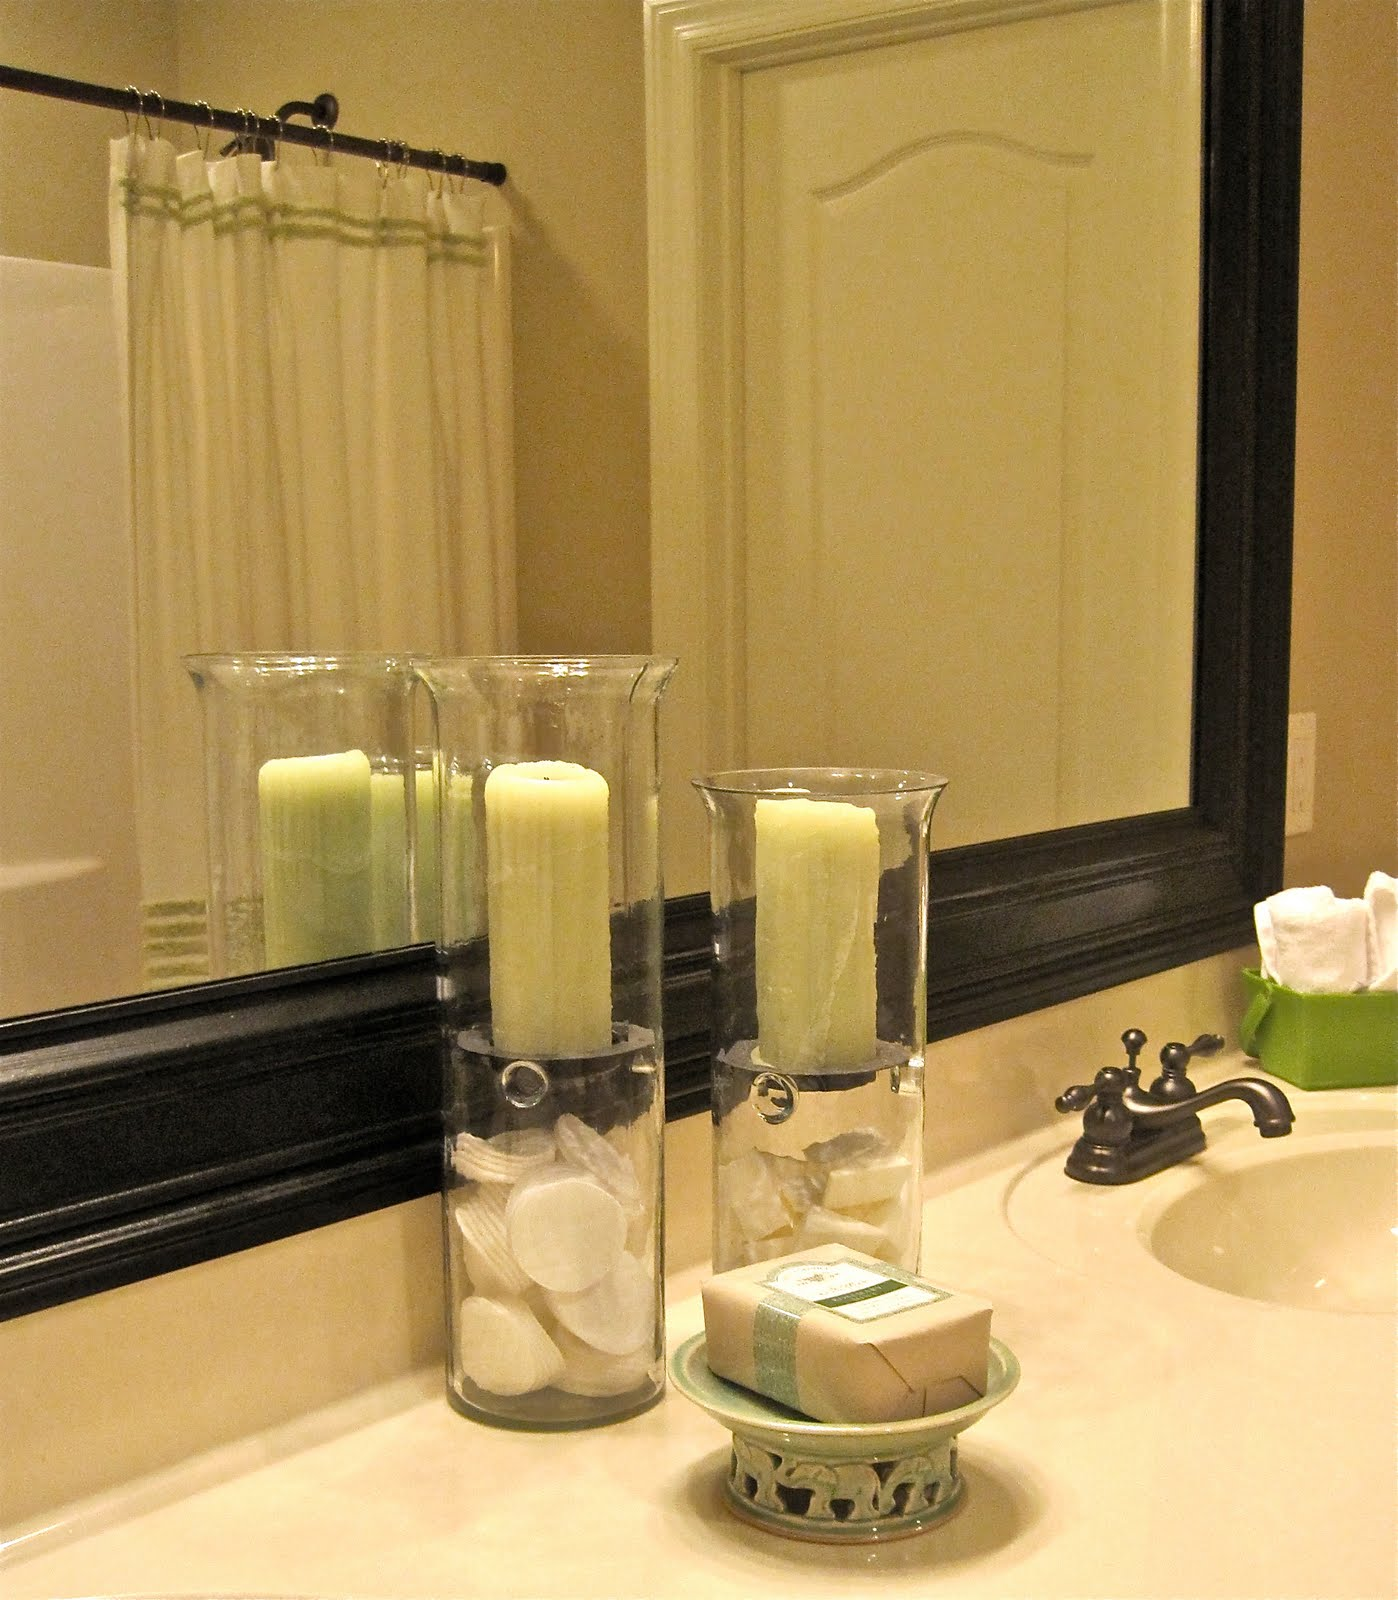 Frame Your Bathroom Mirror: Bathroom Mirror Frame Tutorial